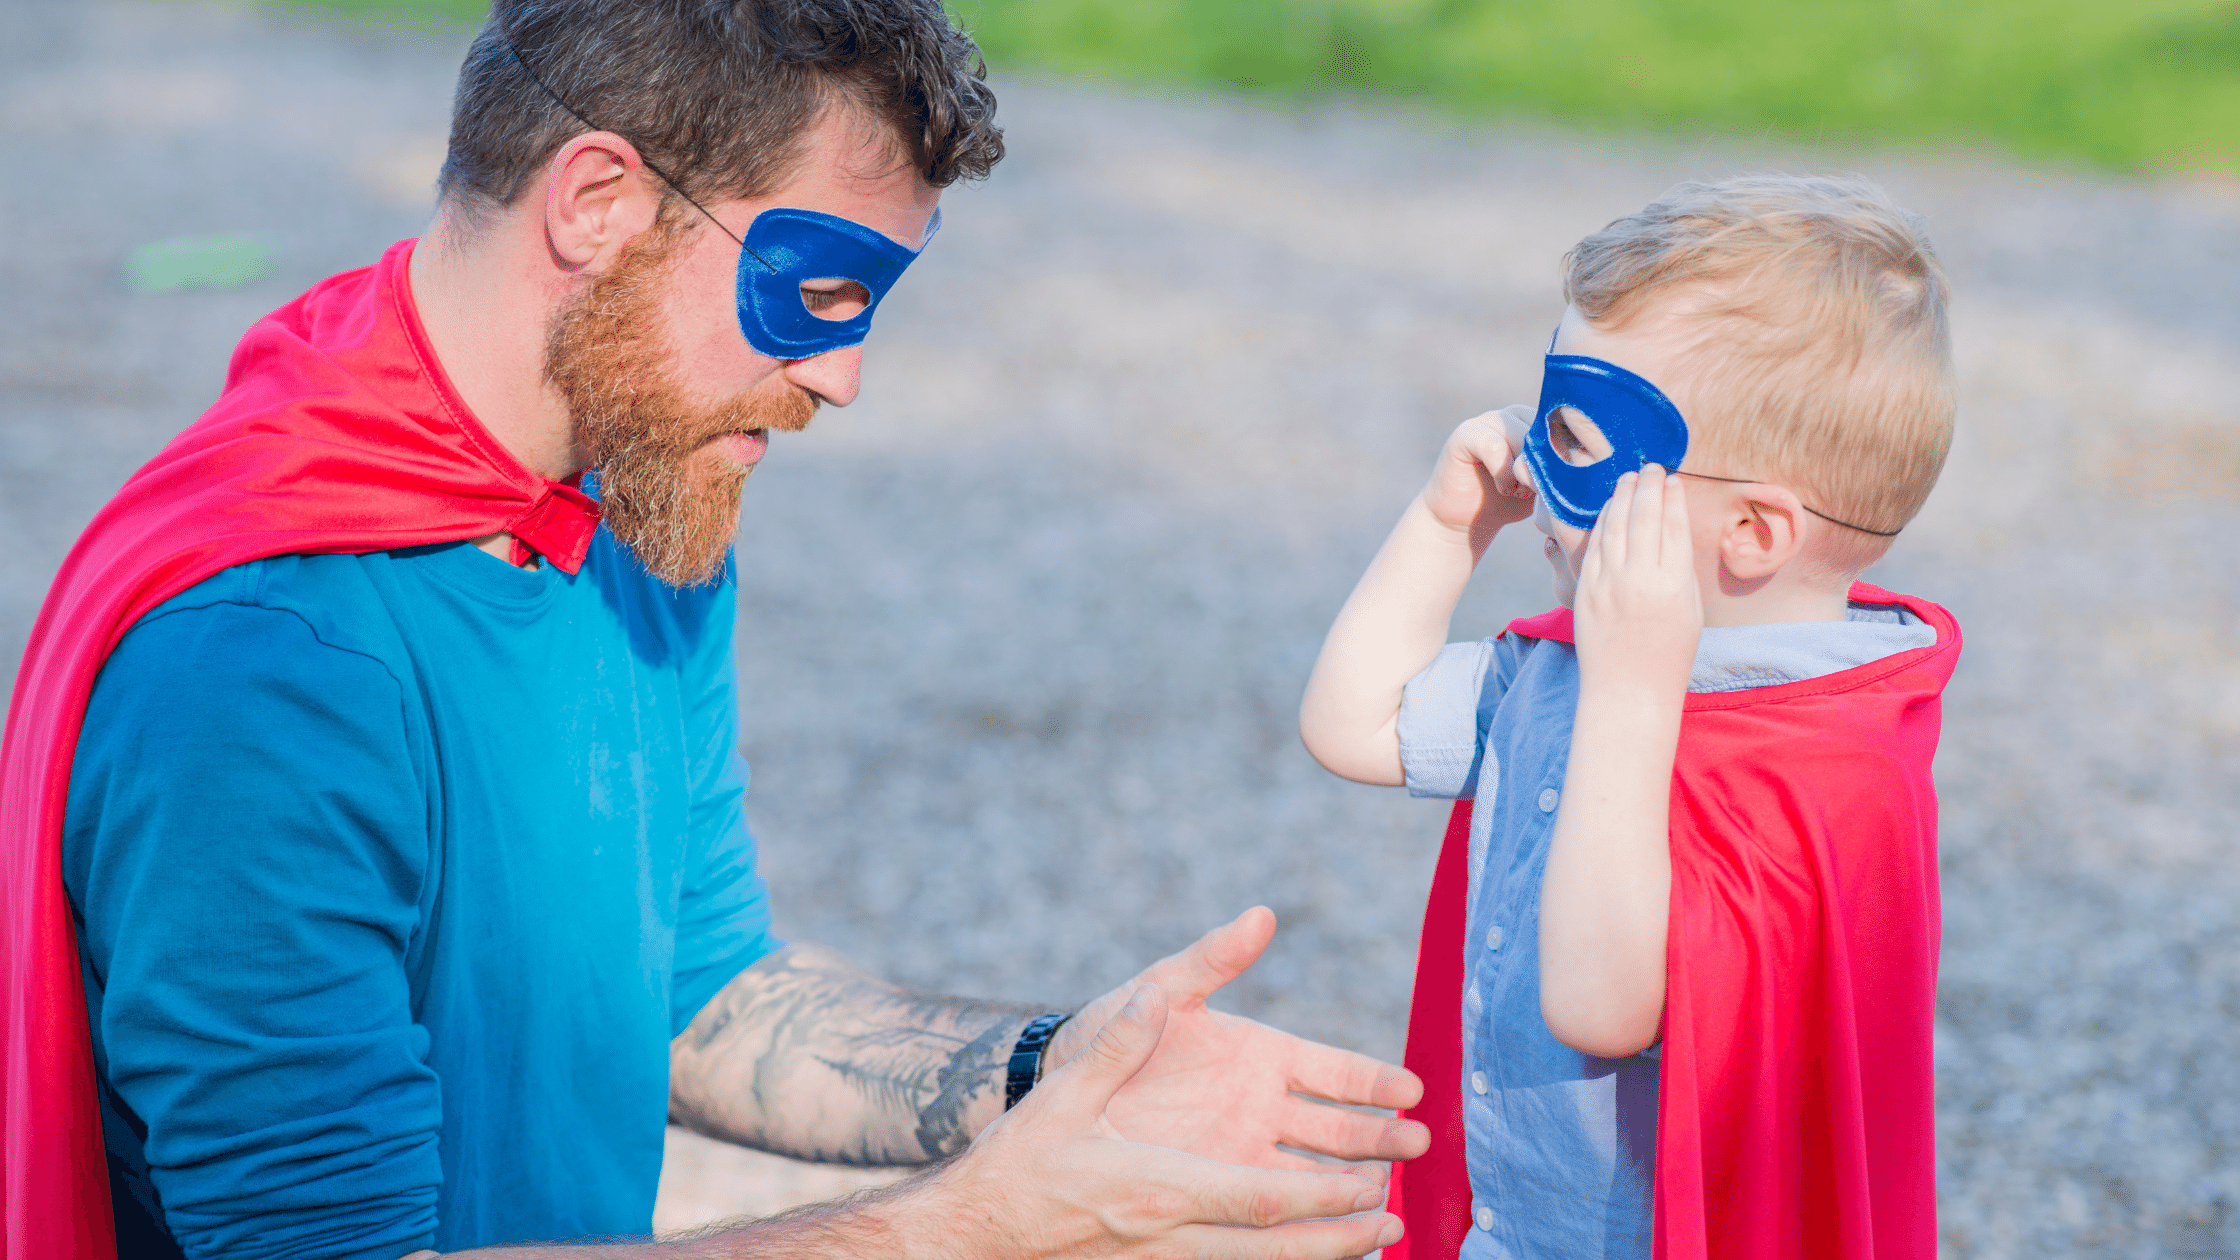 Dad and son wearing superhero costumes